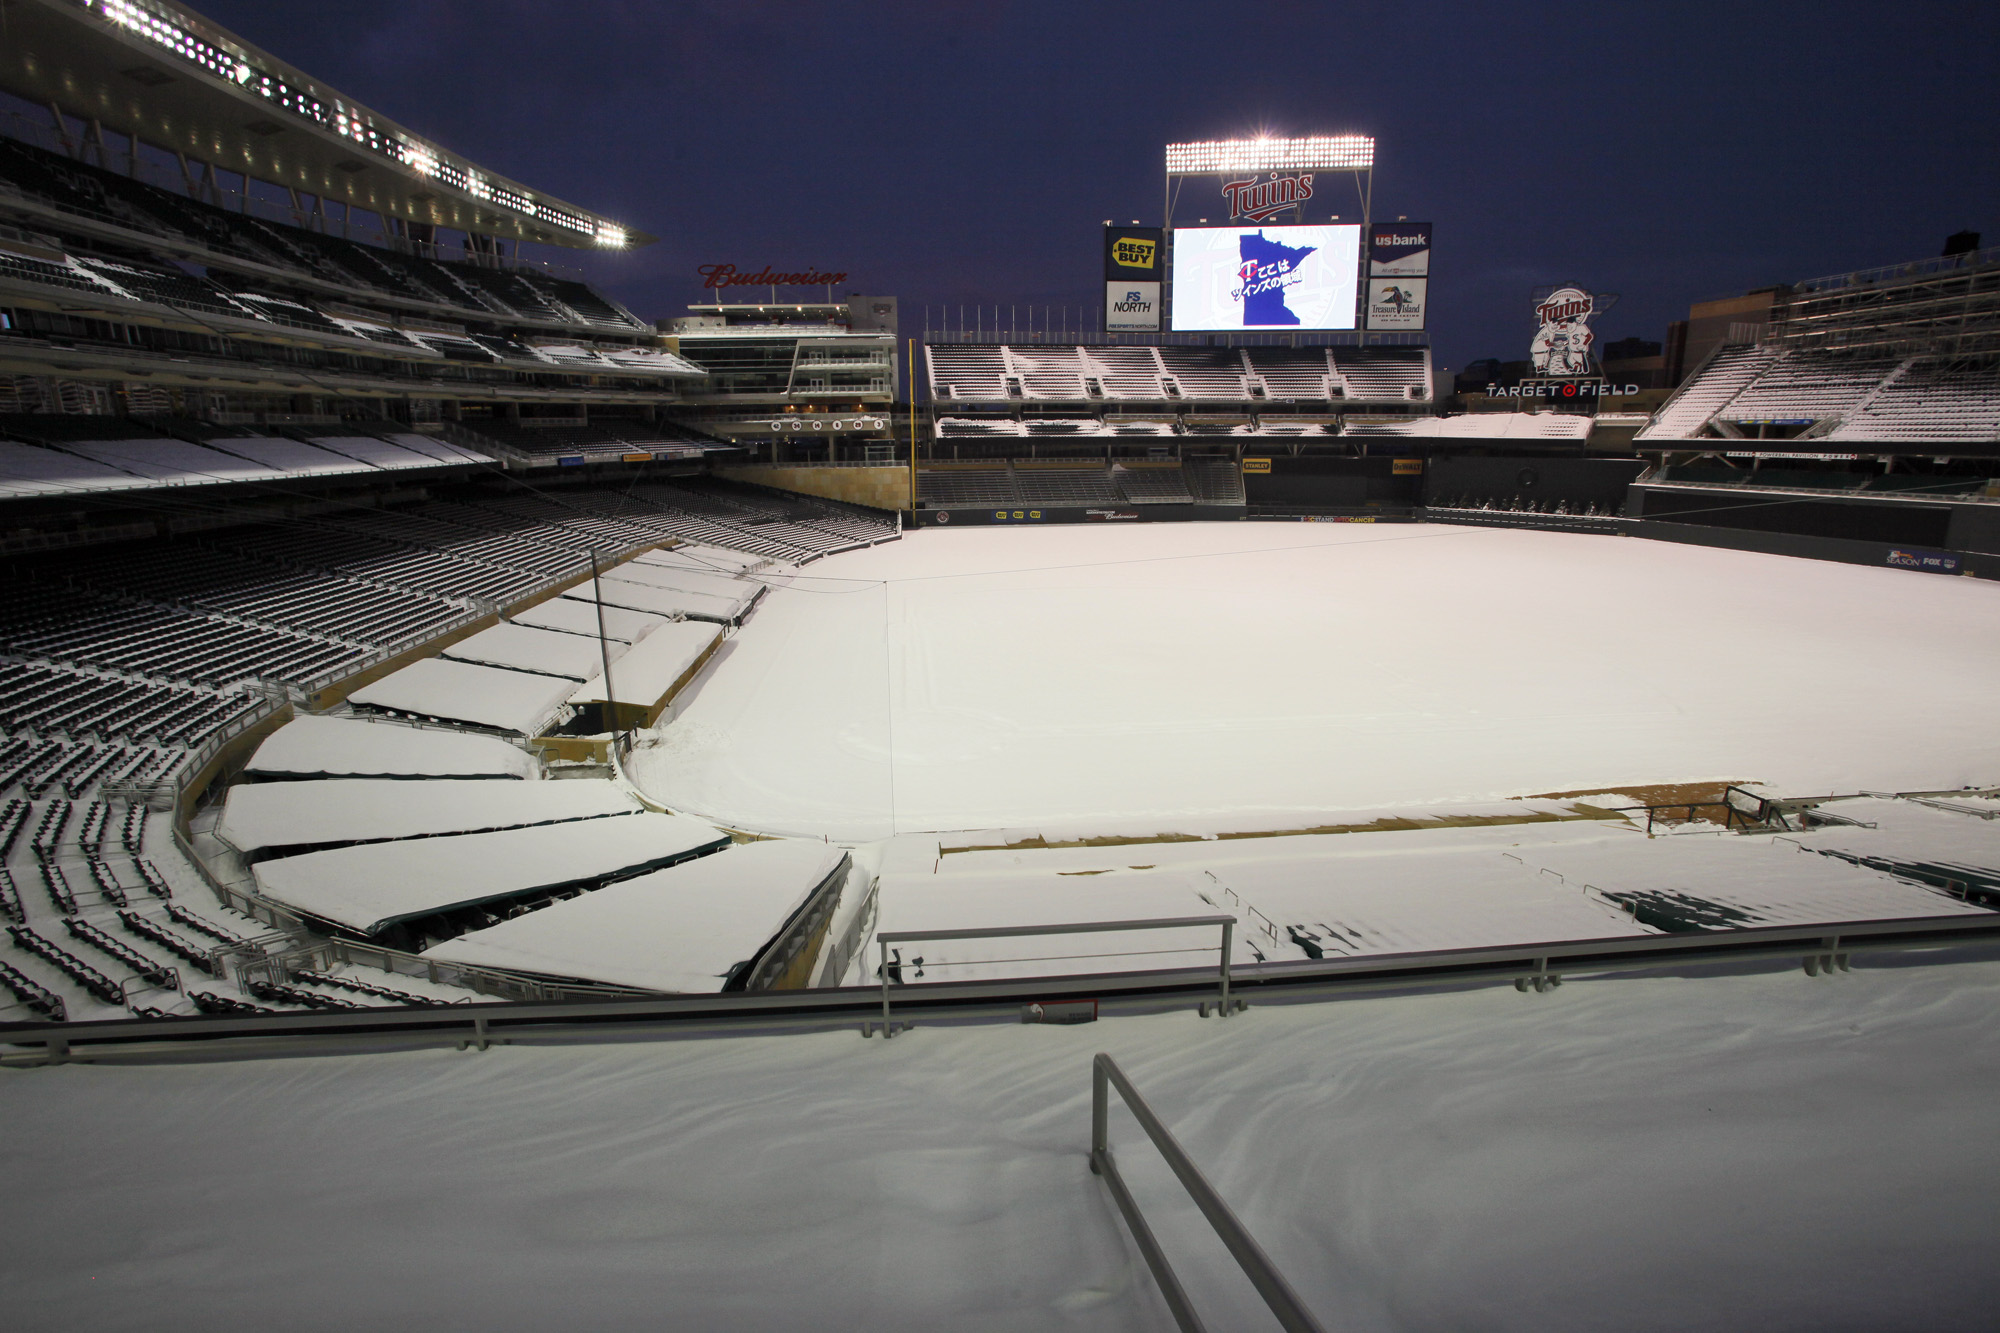 MARLIN LEVISON*mlevison@startribune.com GENERAL INFORMATION : ] Japanese baseball player Tsuyoshi Nishioka was introduced as a newly acquired Twins player during a press conference at Target Field. IN THIS PHOTO: The scoreboard in the outfield of a snow c